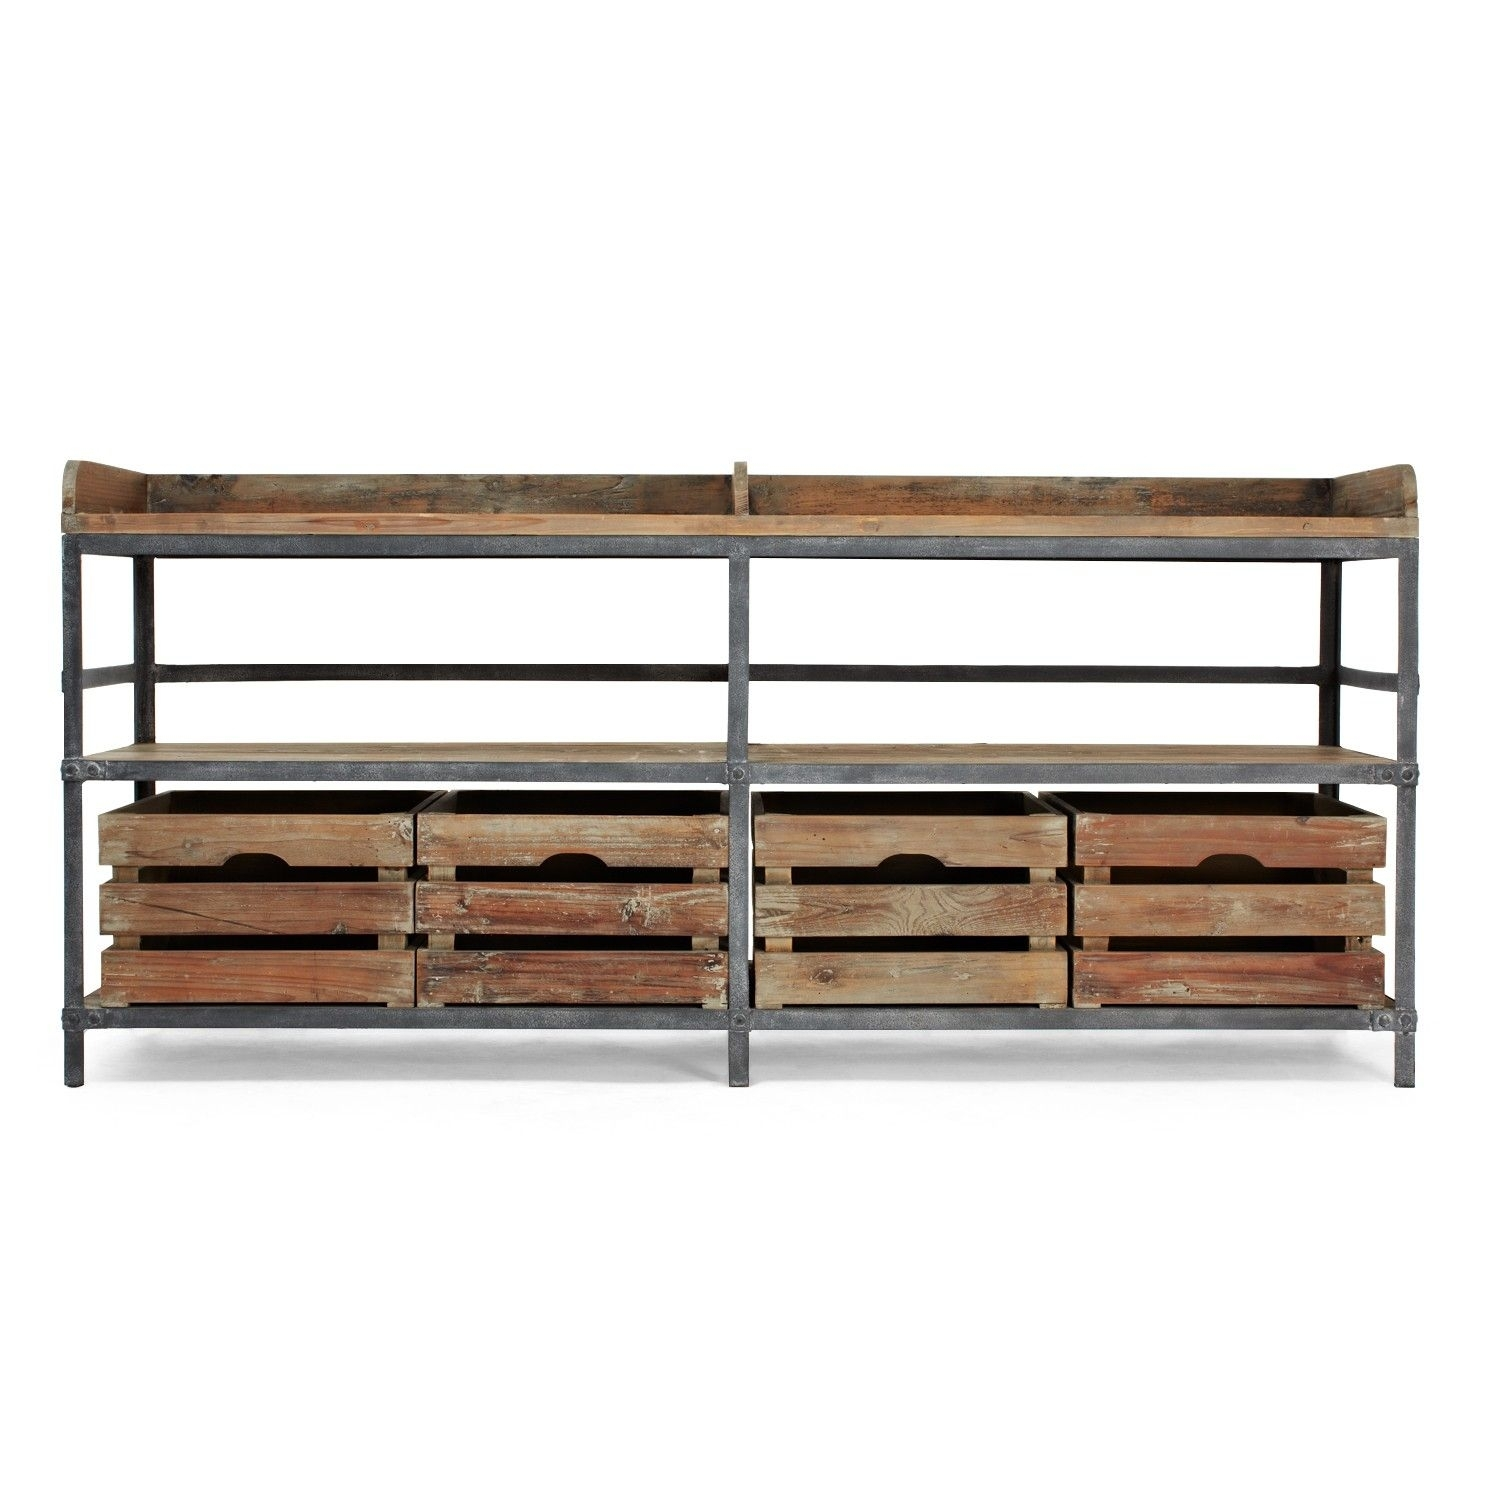 Inspiration about Urbn 2.0 Reclaimed Pine & Metal Sideboard | Dining Room | Pinterest Intended For 2018 Metal Framed Reclaimed Wood Sideboards (#14 of 20)